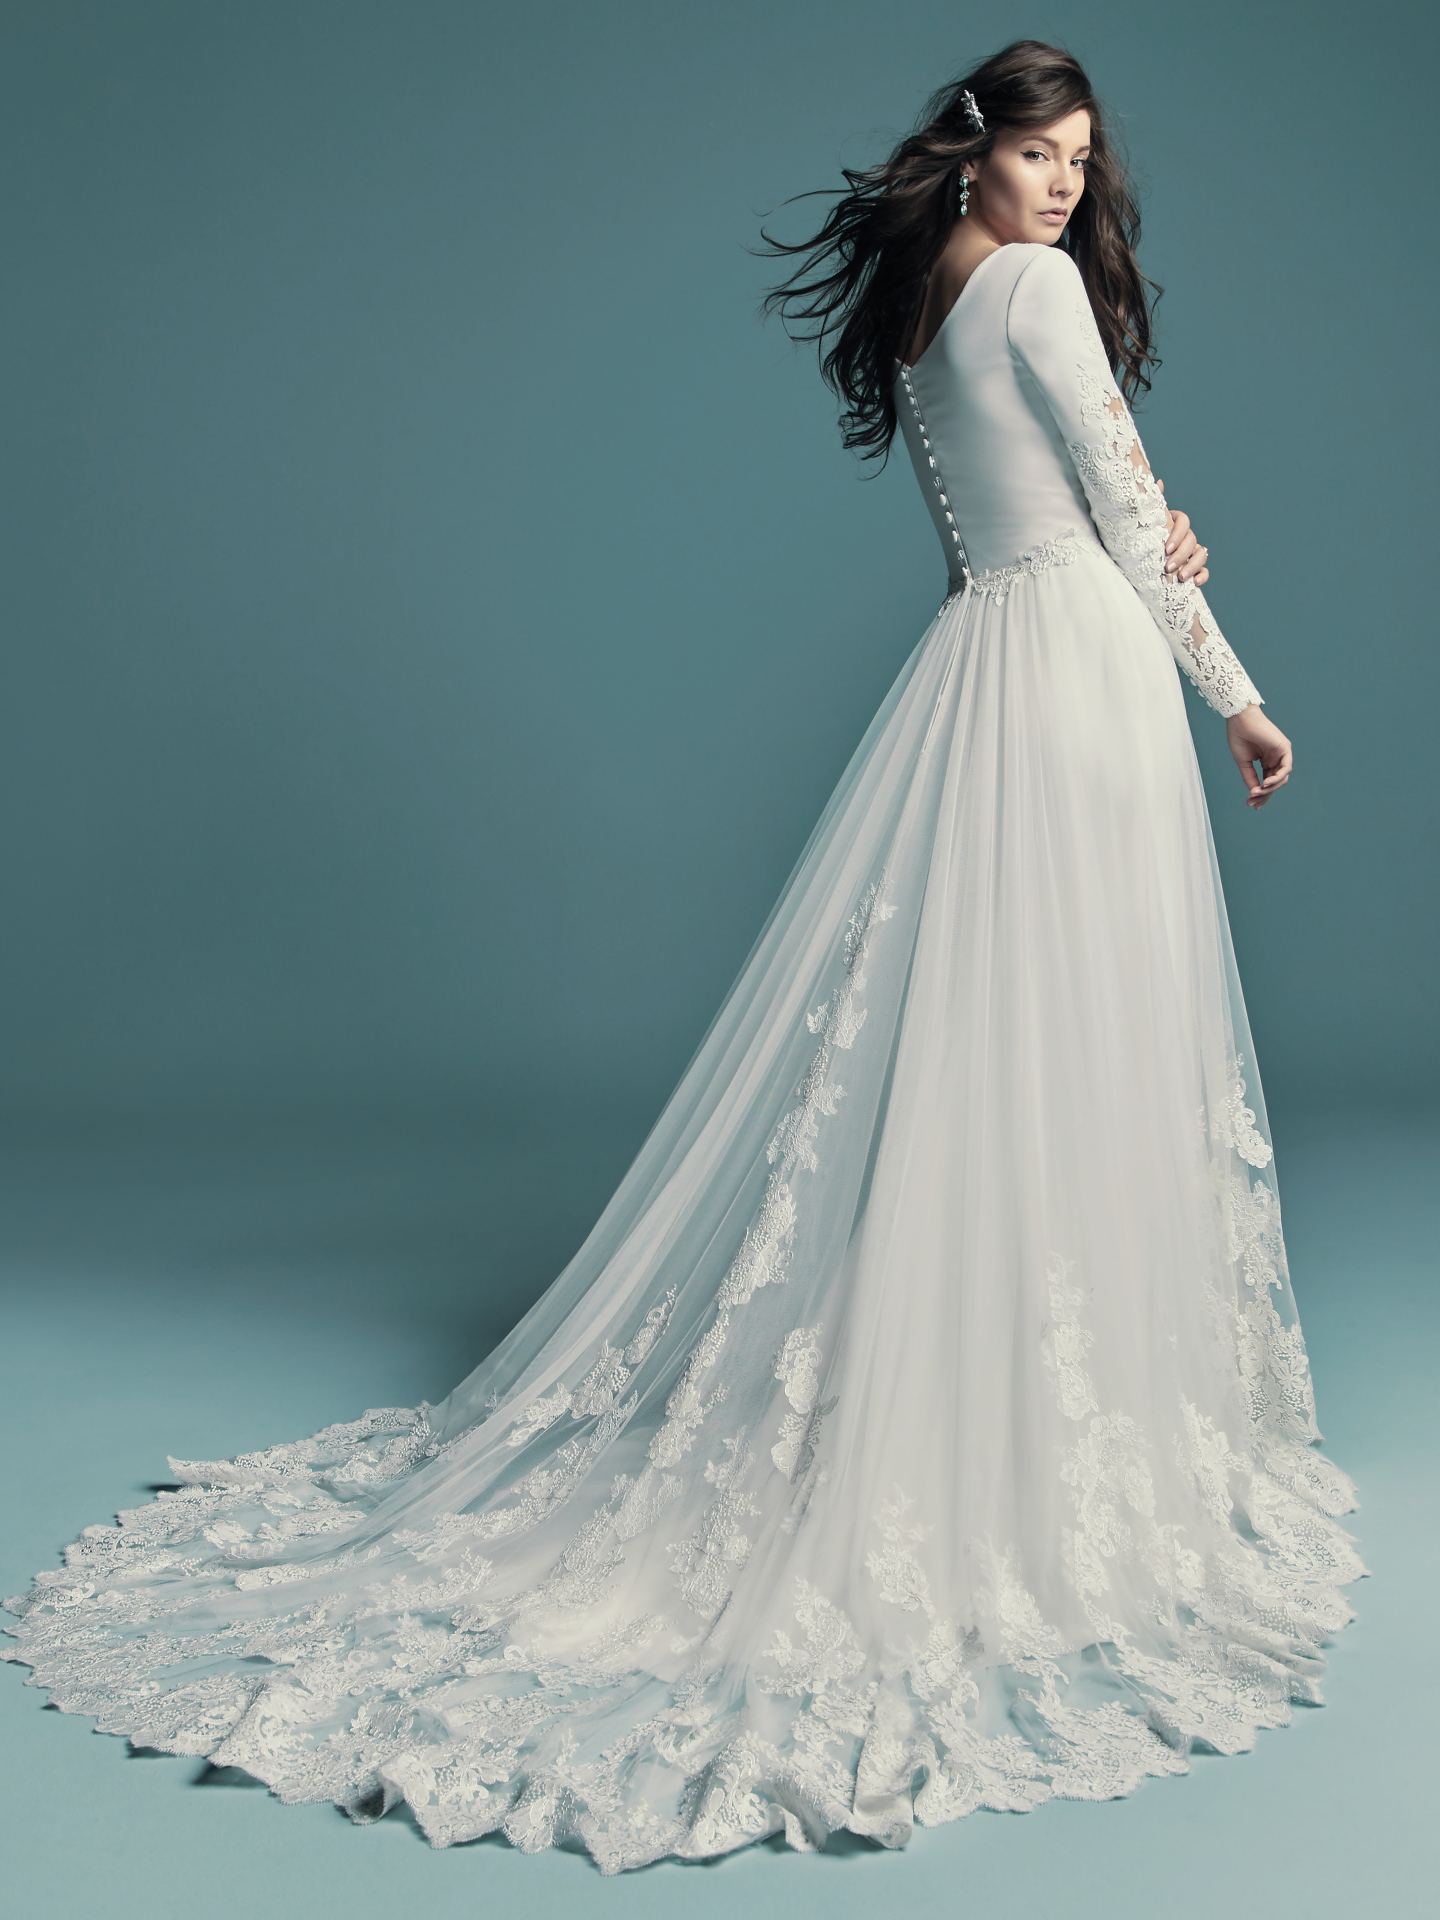 The Ultimate Guide to Wedding Gowns for Curvy Brides from Whitney of CurveGenius - Try the Olyssia wedding dress by Maggie Sottero for full coverage and overskirt option